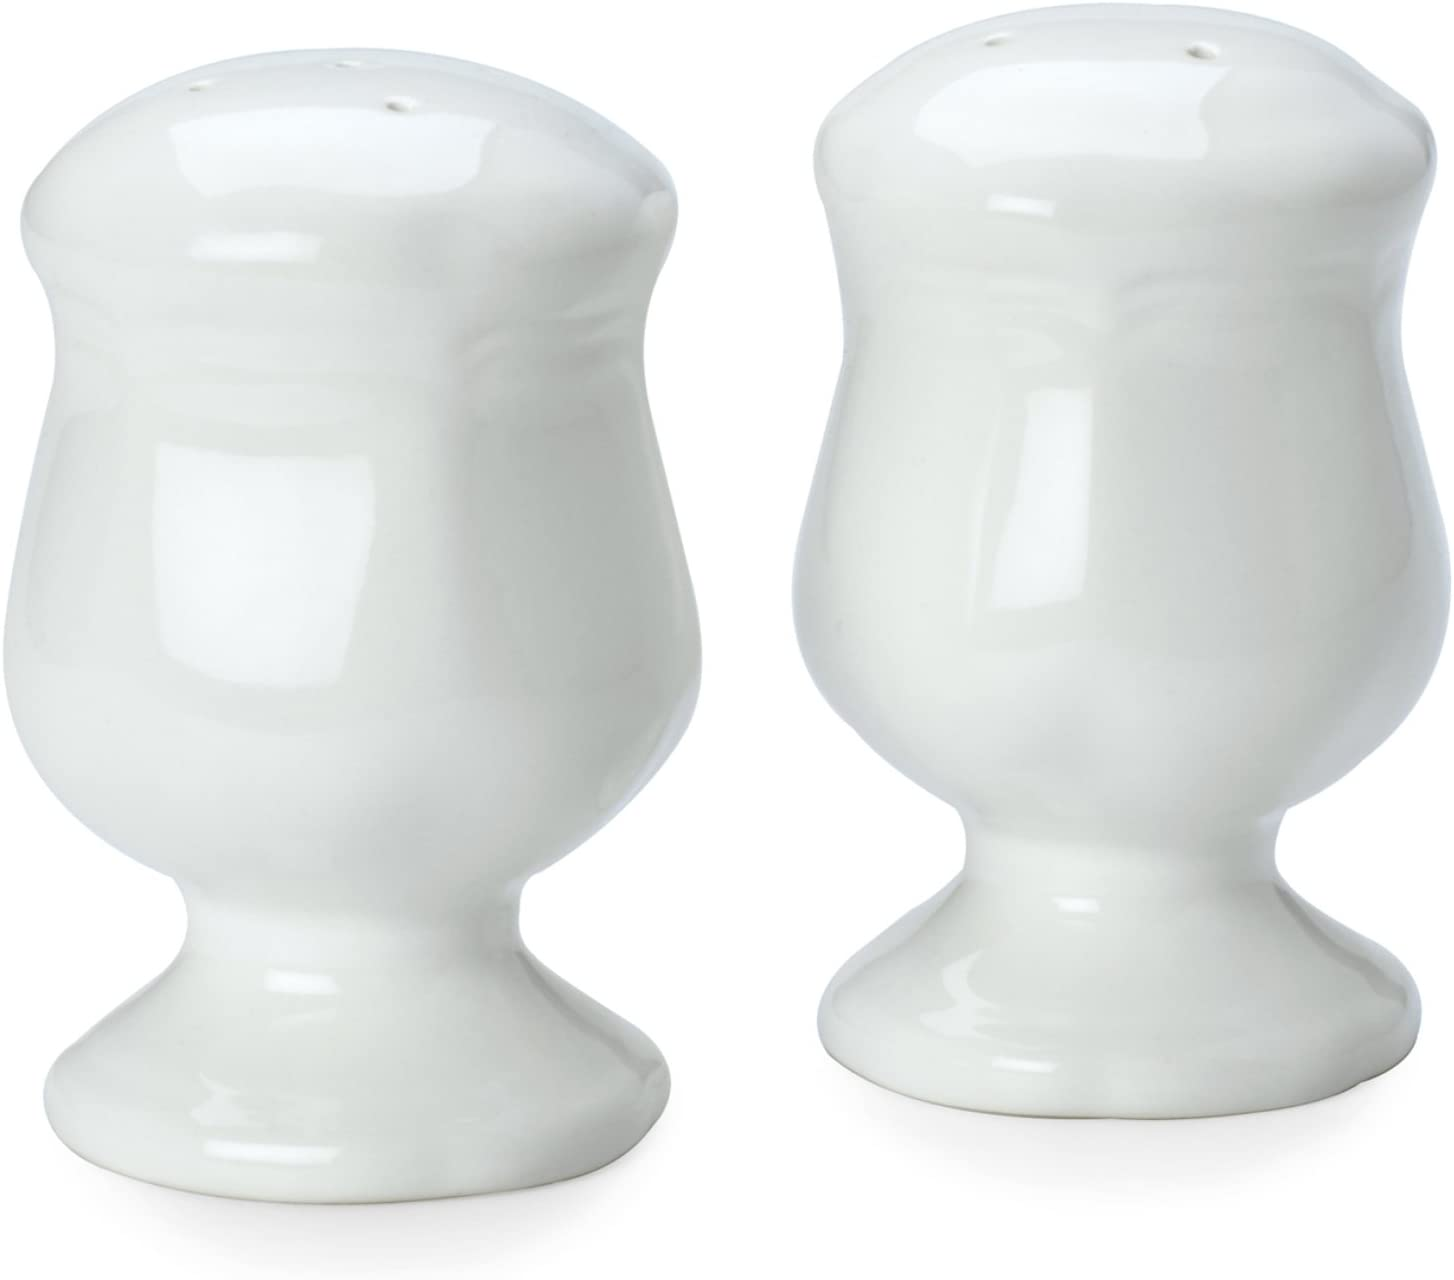 Mikasa French Countryside Salt and Pepper Shaker Set